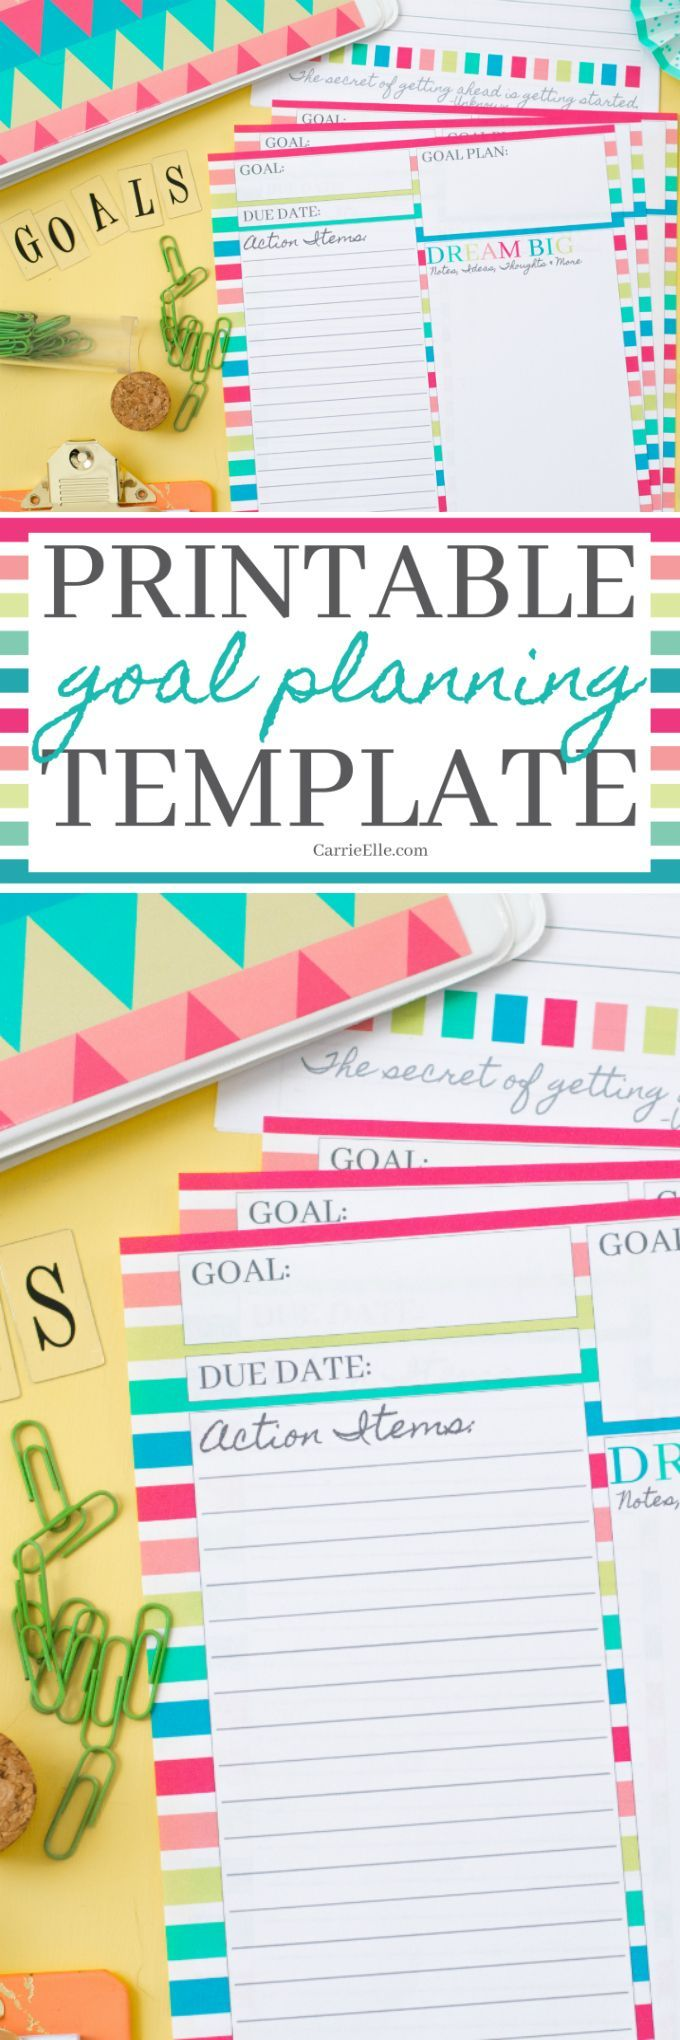 Printable Goal Planning Template - this is a great way to lay out your goal with clear action items!